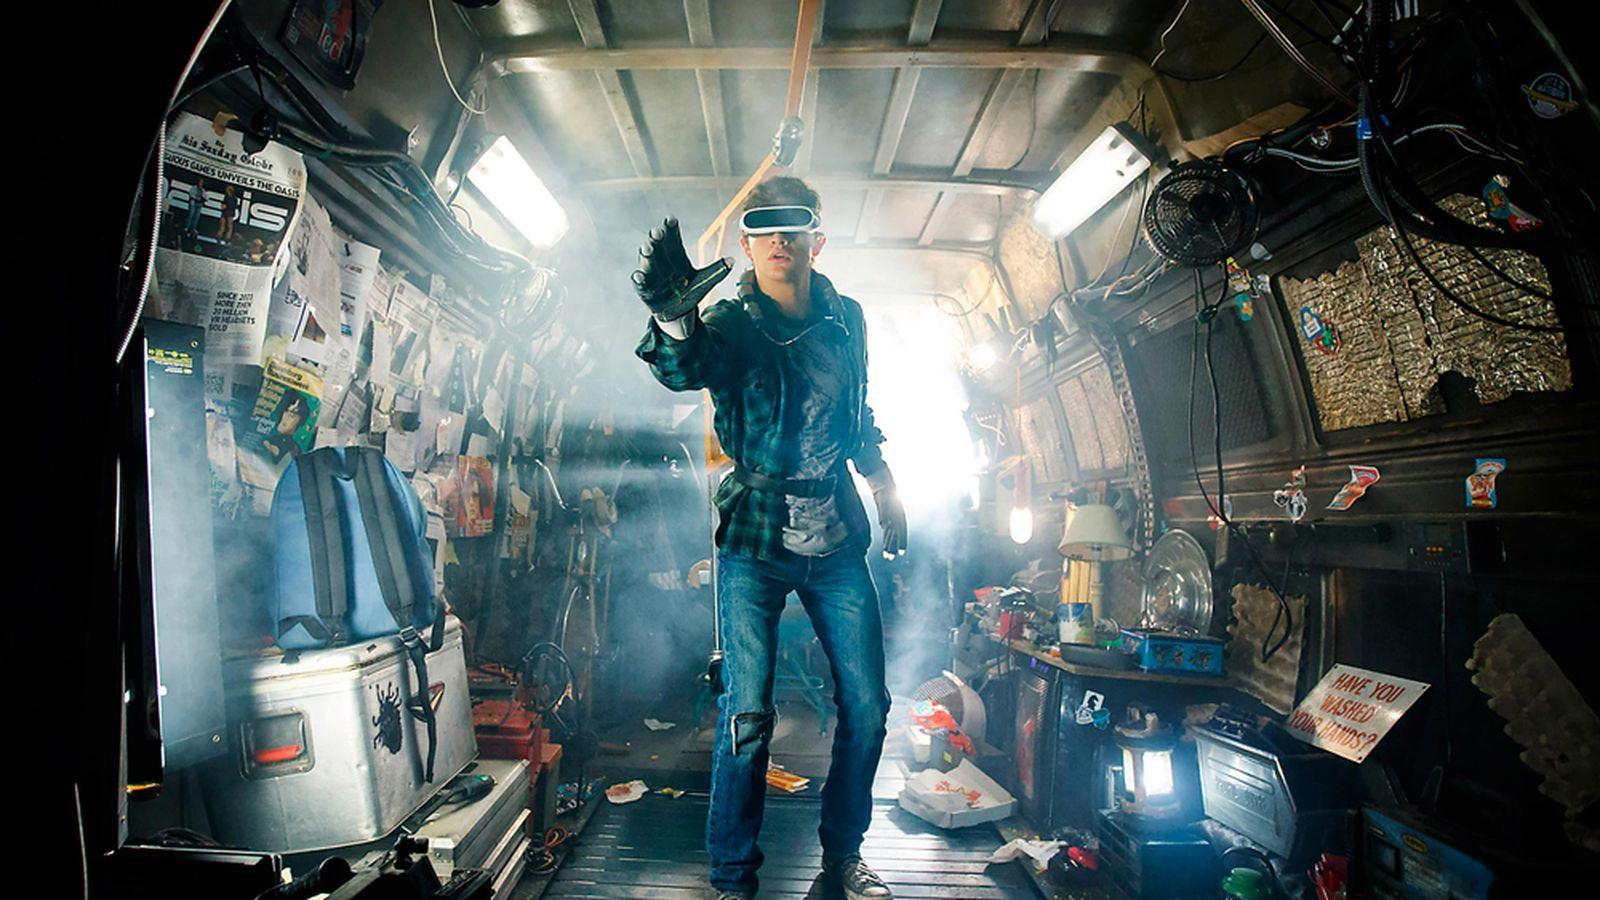 Watch: Steven Spielberg's 'Ready Player One' trailer released at ...